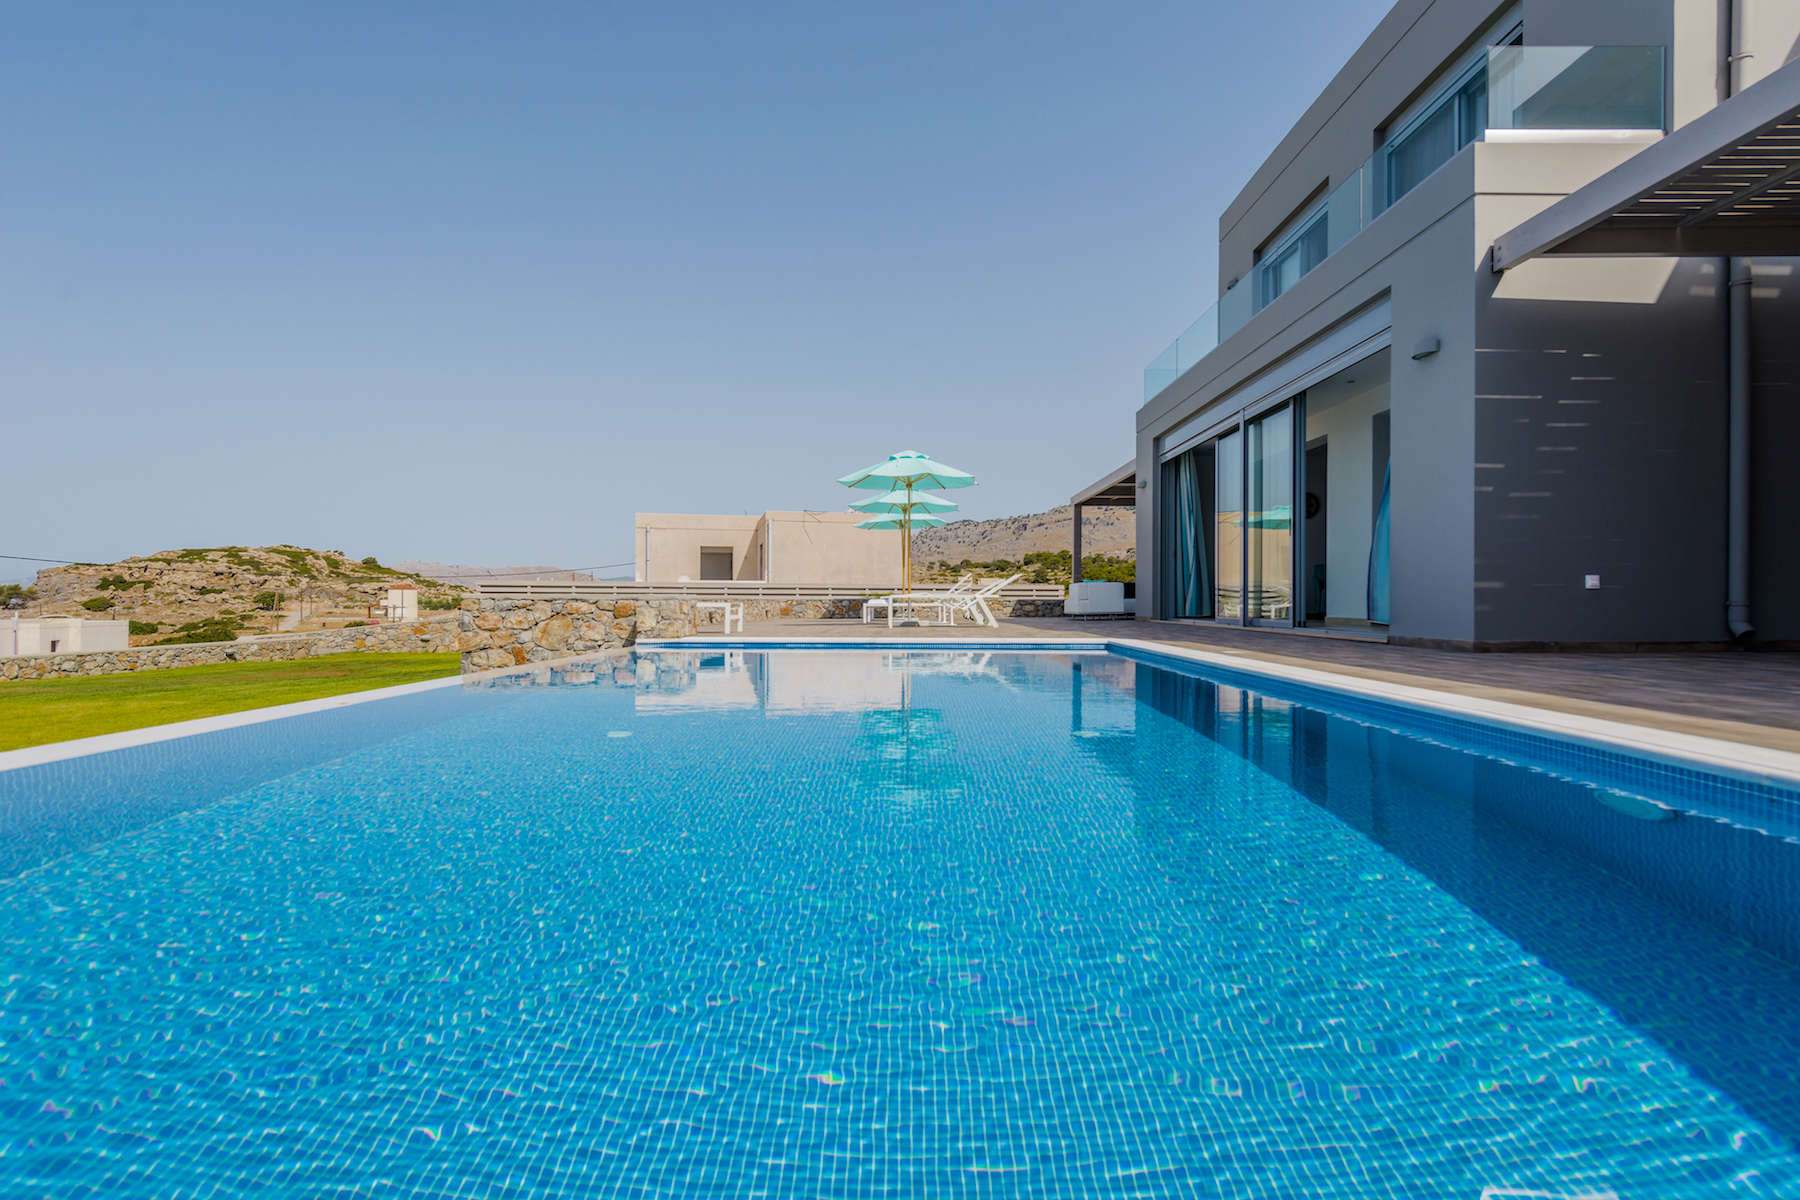 Single Family Home for Sale at Summer Living Pefkos Summer Living Rhodes, Southern Aegean, 85107 Greece